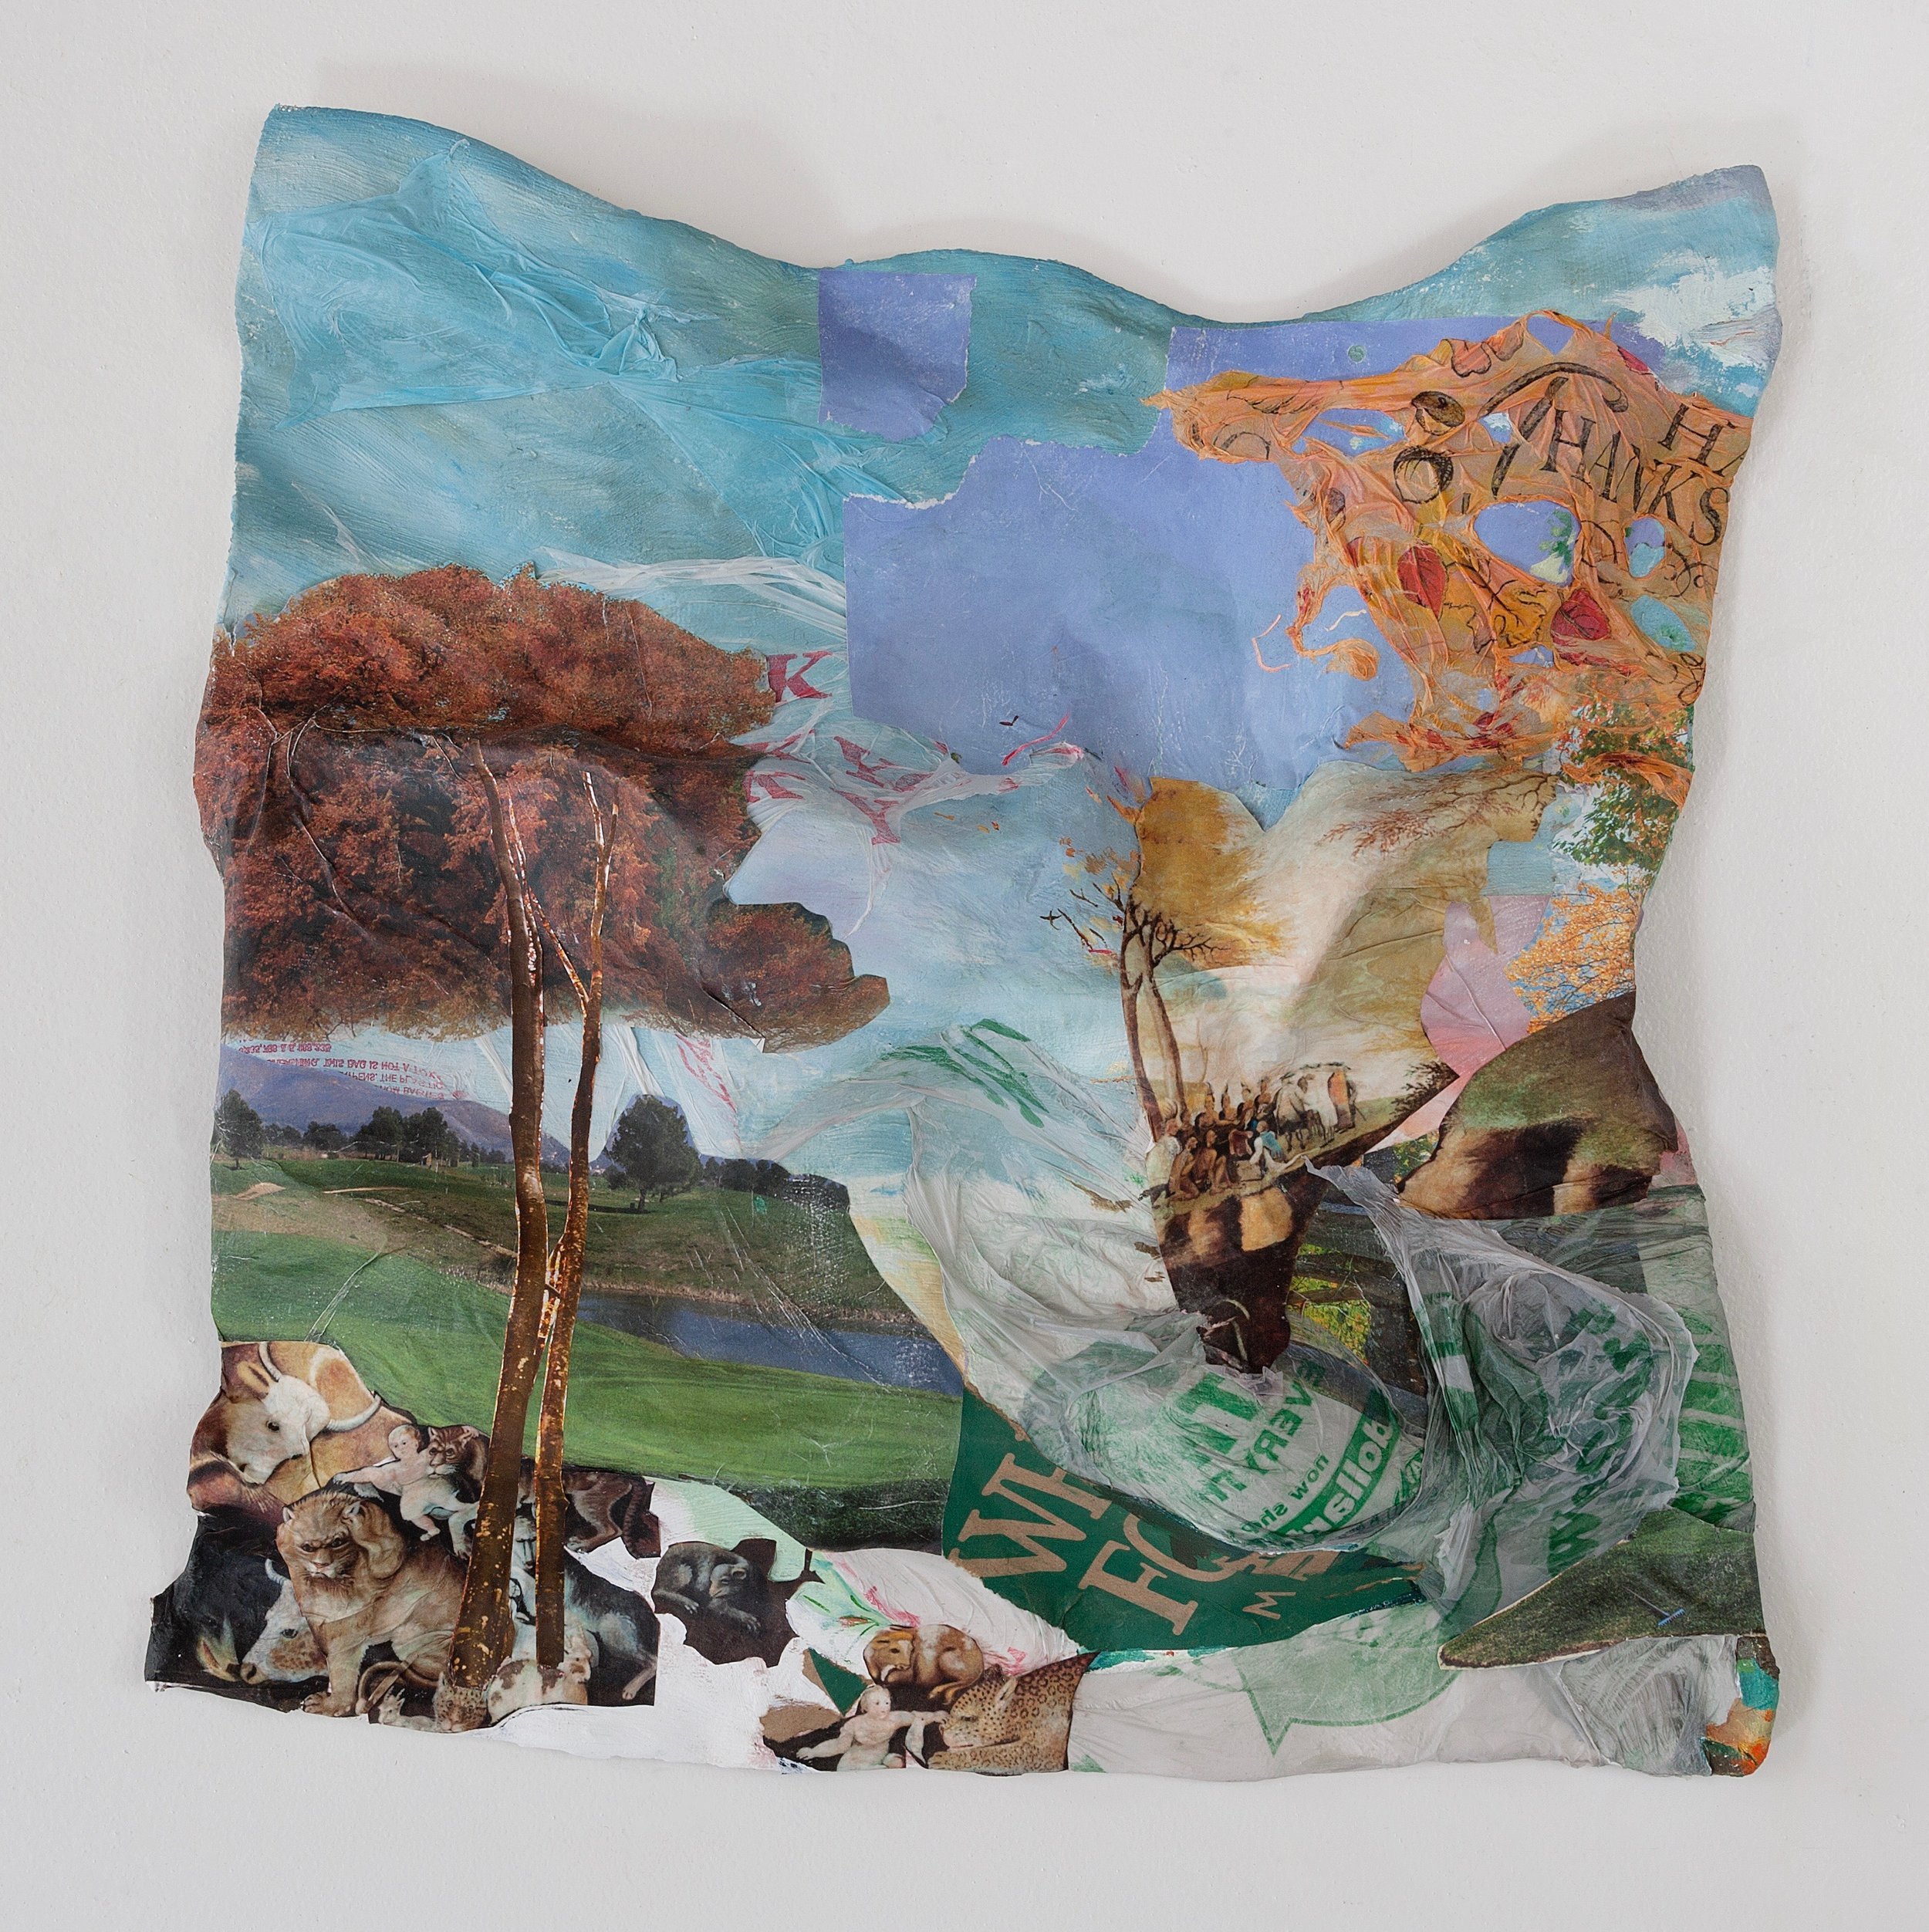 """Pieceable Kingdom , 2017, oil, plastic Thanksgiving tablecloth, digital print of Edward Hicks' 1834 Peaceable Kingdom, Whole Foods bag, Dollar Tree bag, """"We Care We Recycle"""" bag, golf course calendar, Thank You Thank You bodega bag on plaster, aluminum and wood, 20 x 19 x 3 inches"""